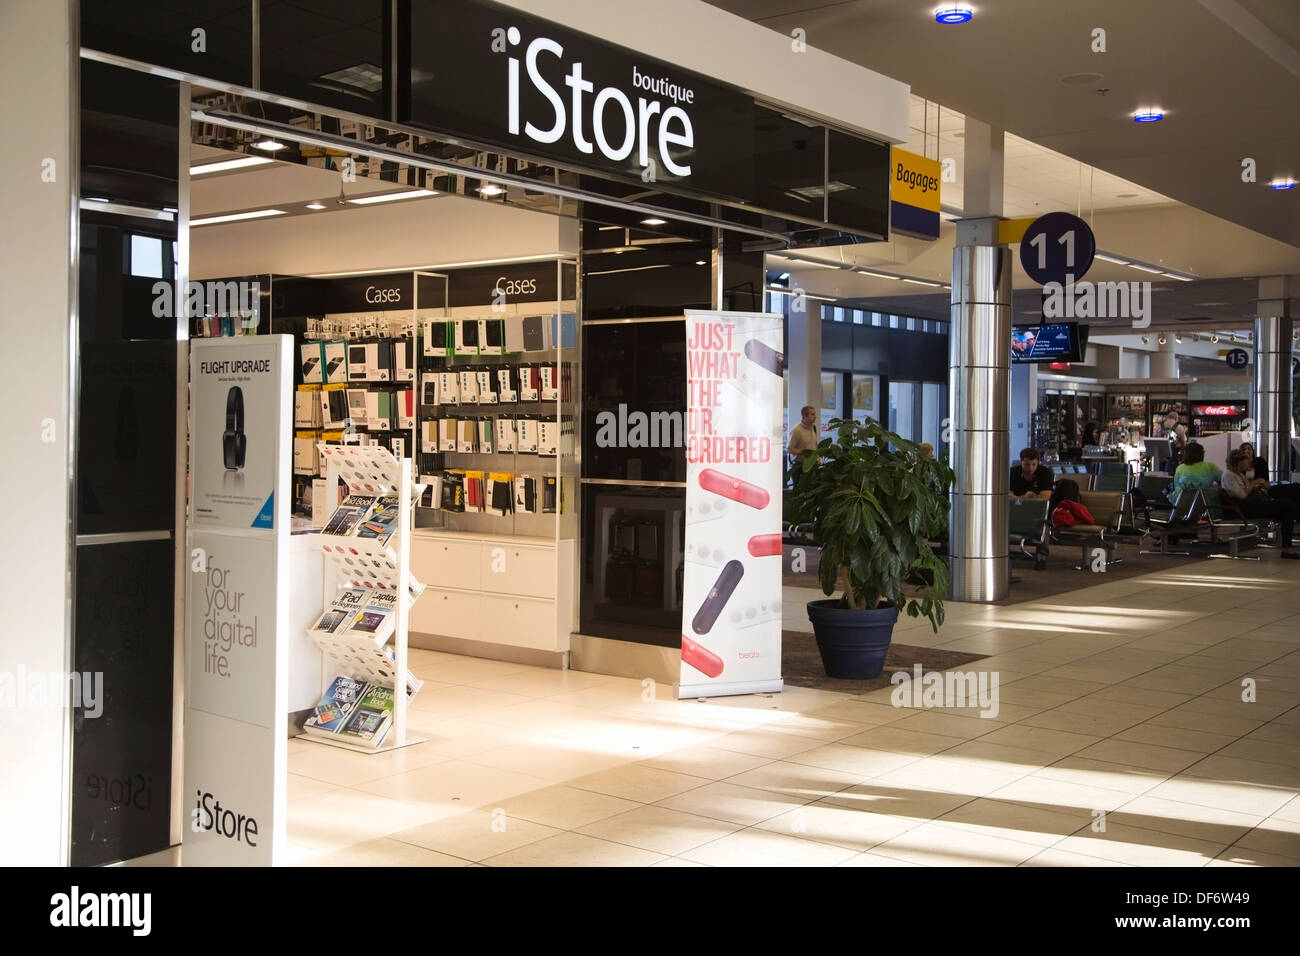 istore boutique in airport - Stock Image